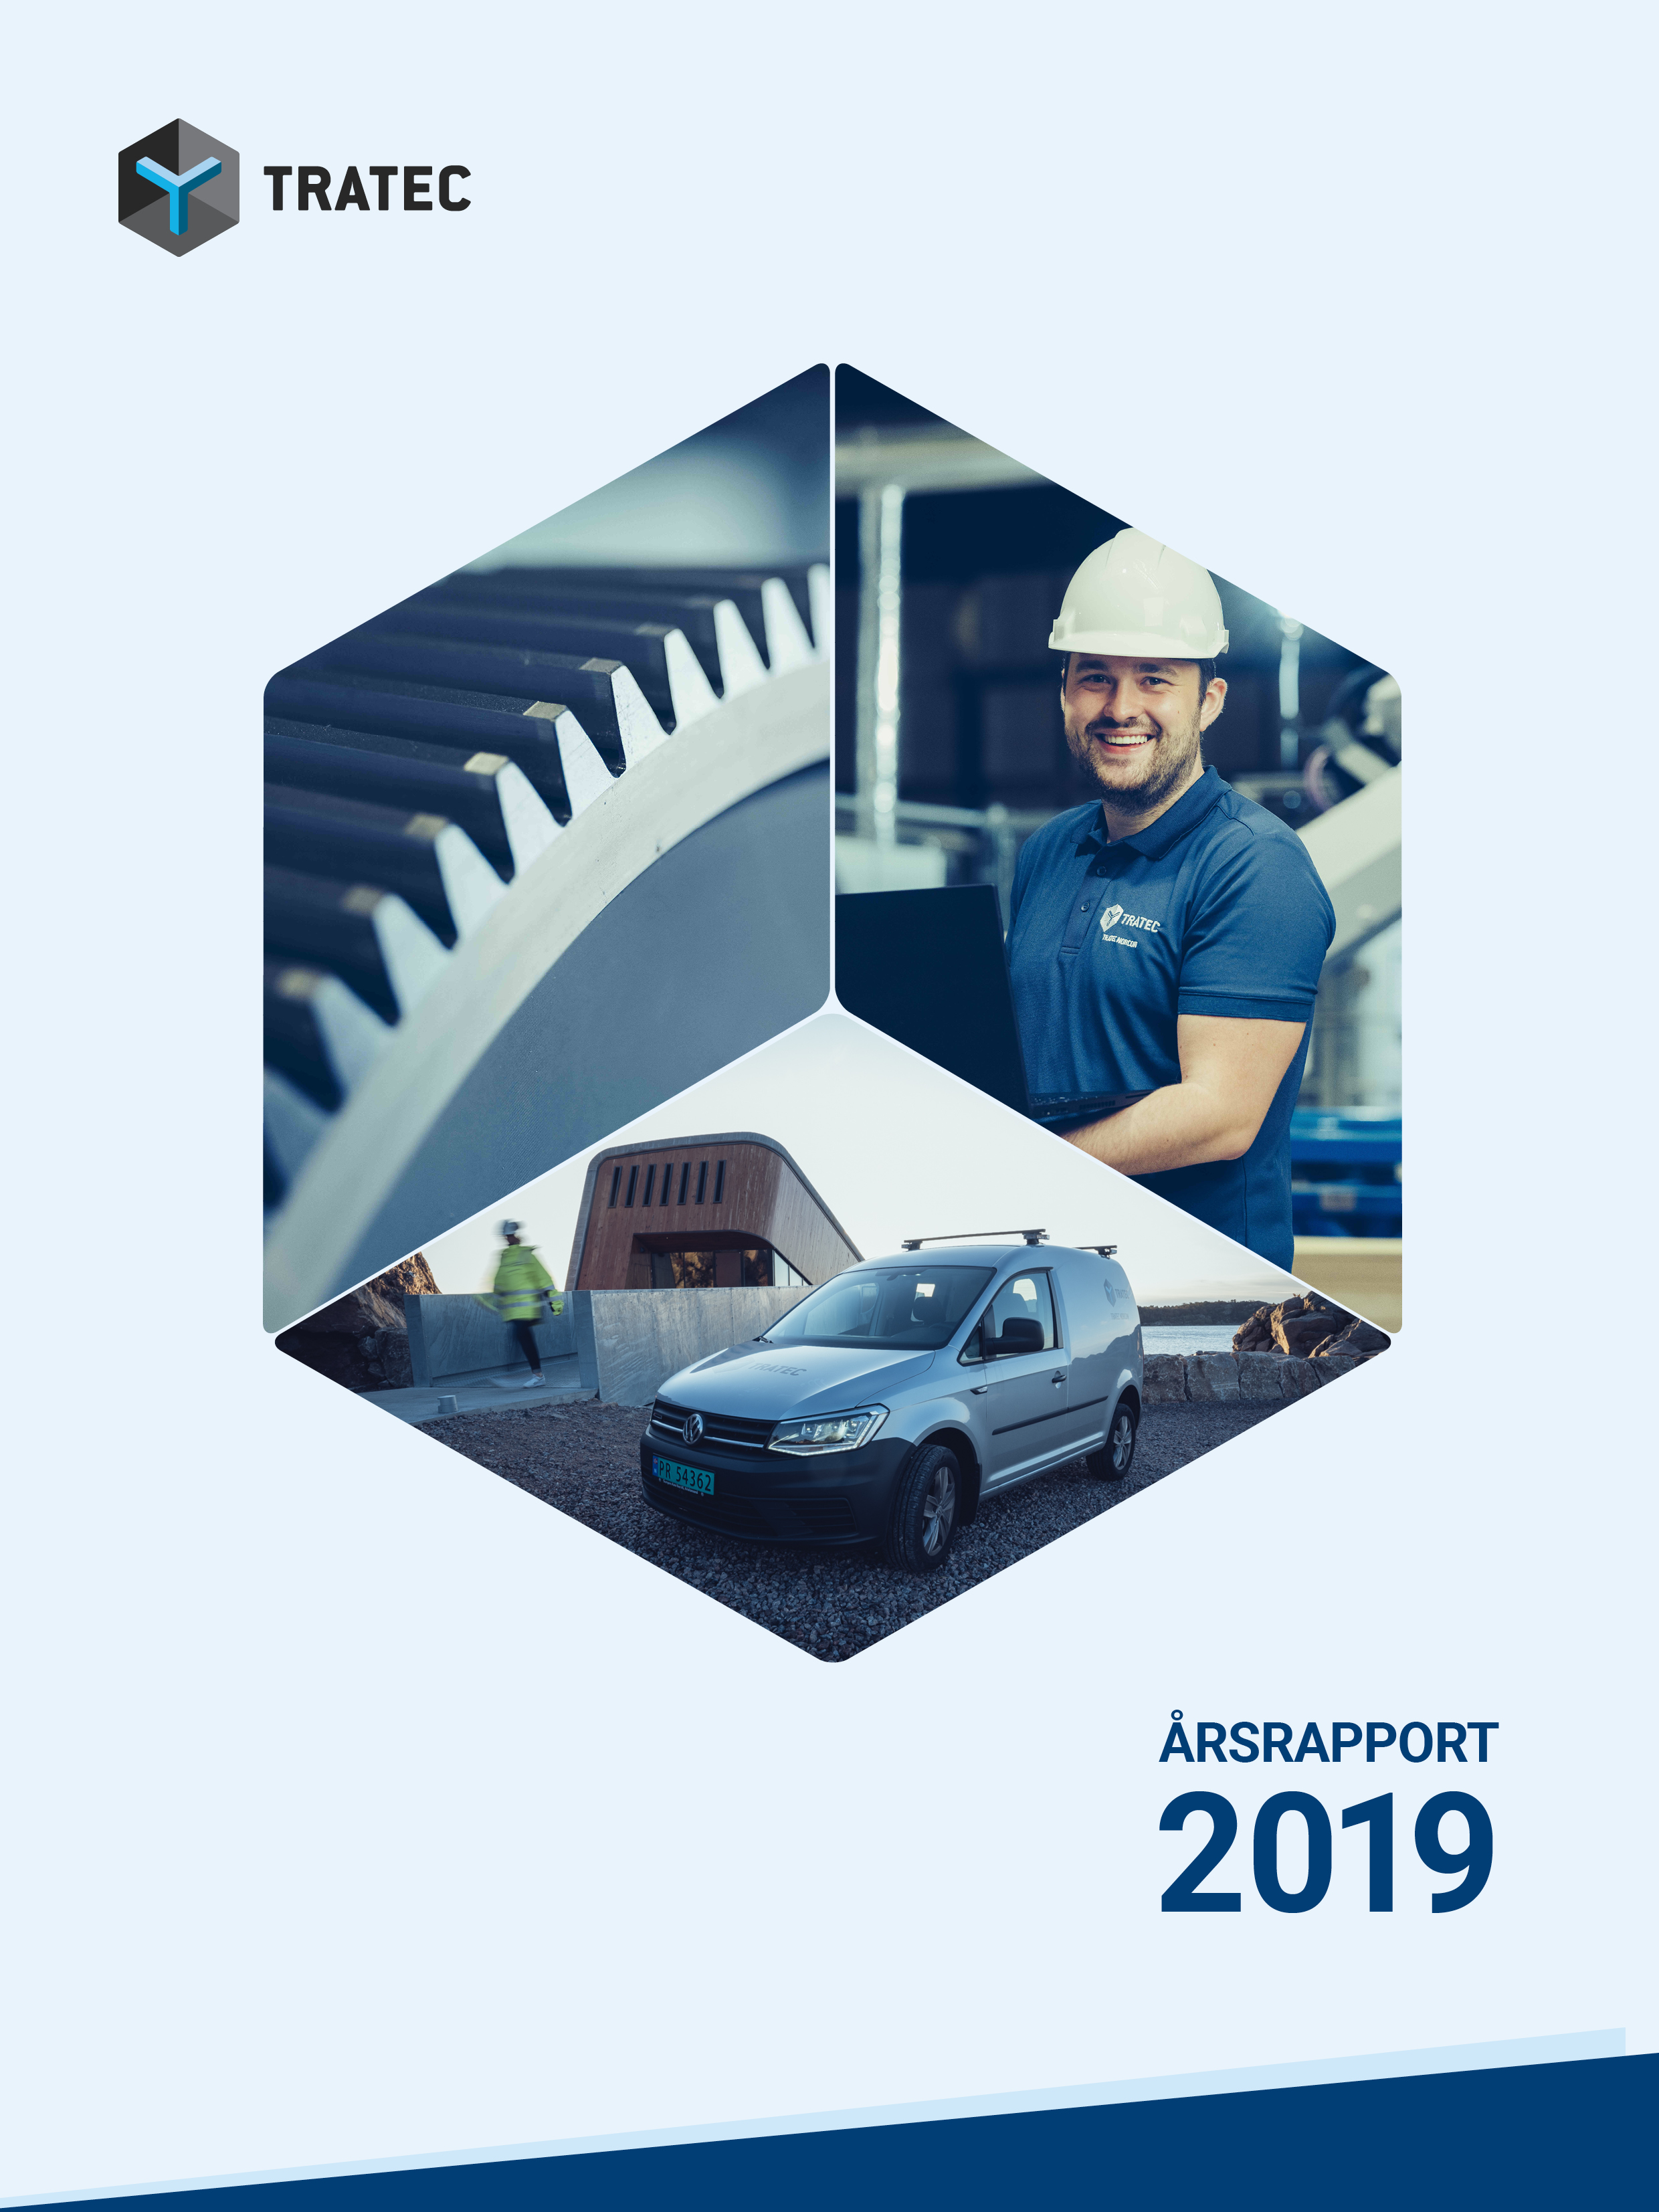 Tratec-Årsrapport-2019_